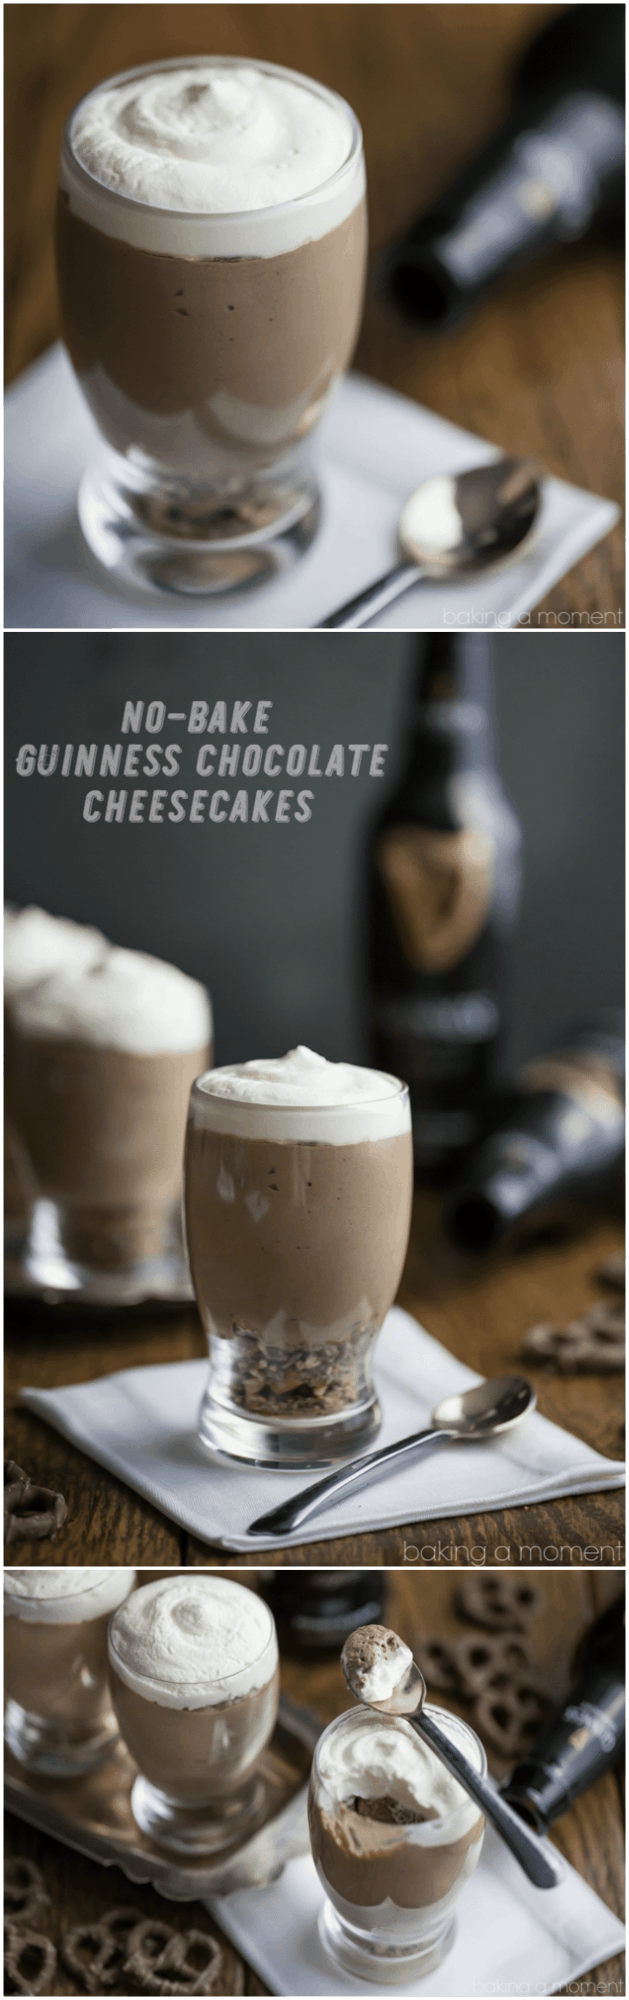 Easy St. Patrick's Day dessert: no-bake chocolate cheesecakes with Guinness, on a crunchy pretzel crust! So fluffy and the flavors are amazing together!